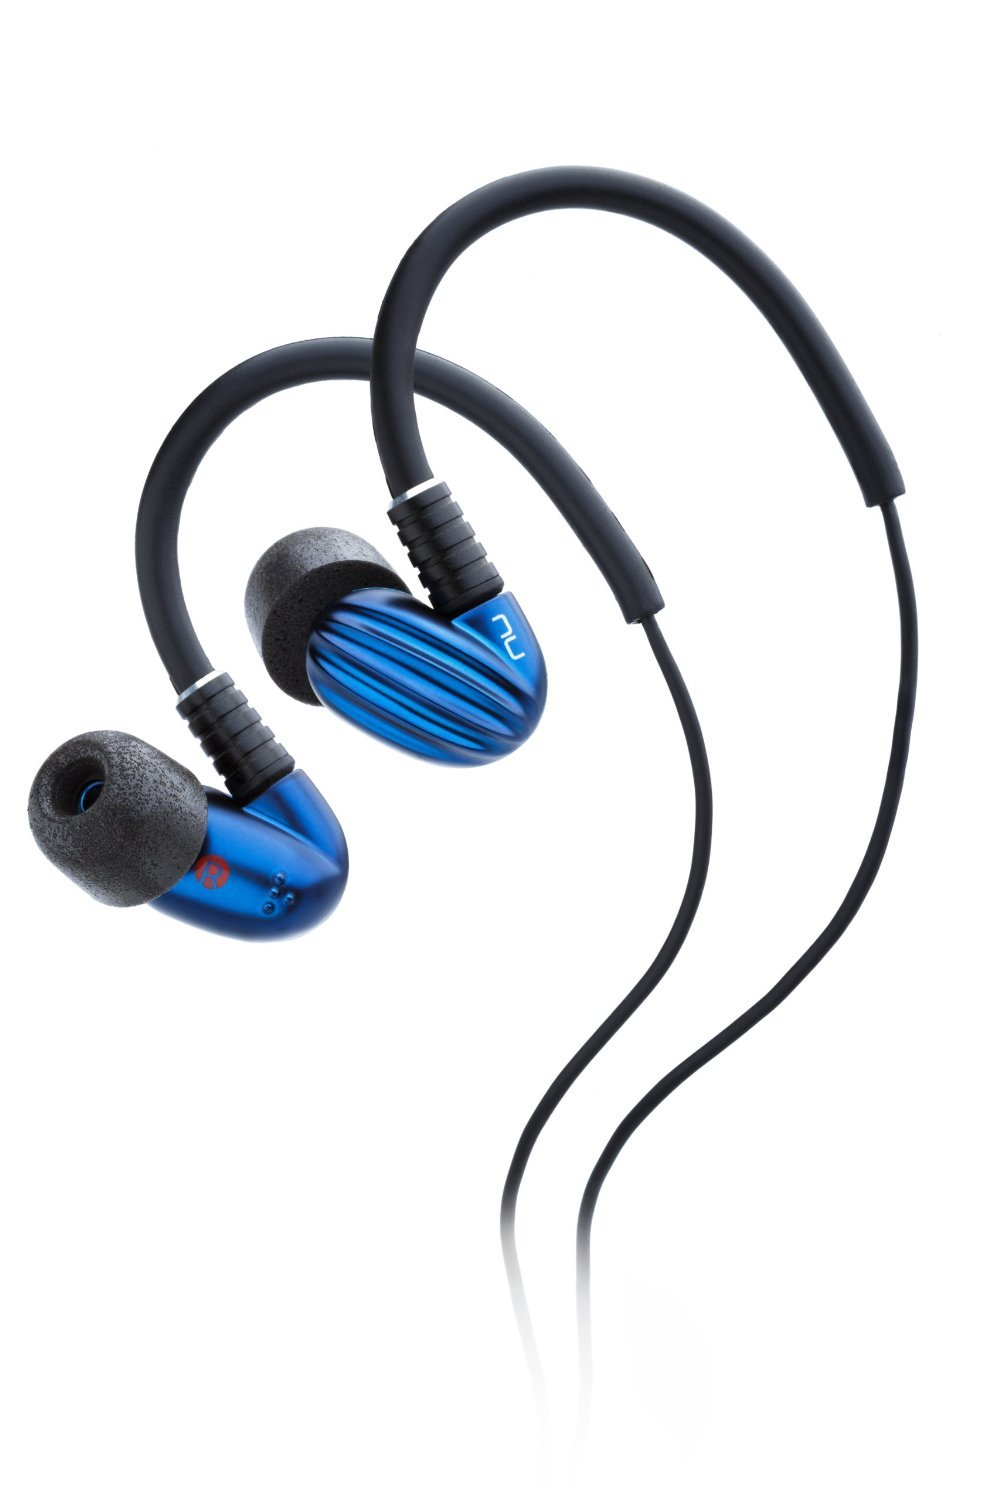 Optoma NuForce Primo8 Quad-Driver Earphones with World's First Phase-Coherent Crossover Design